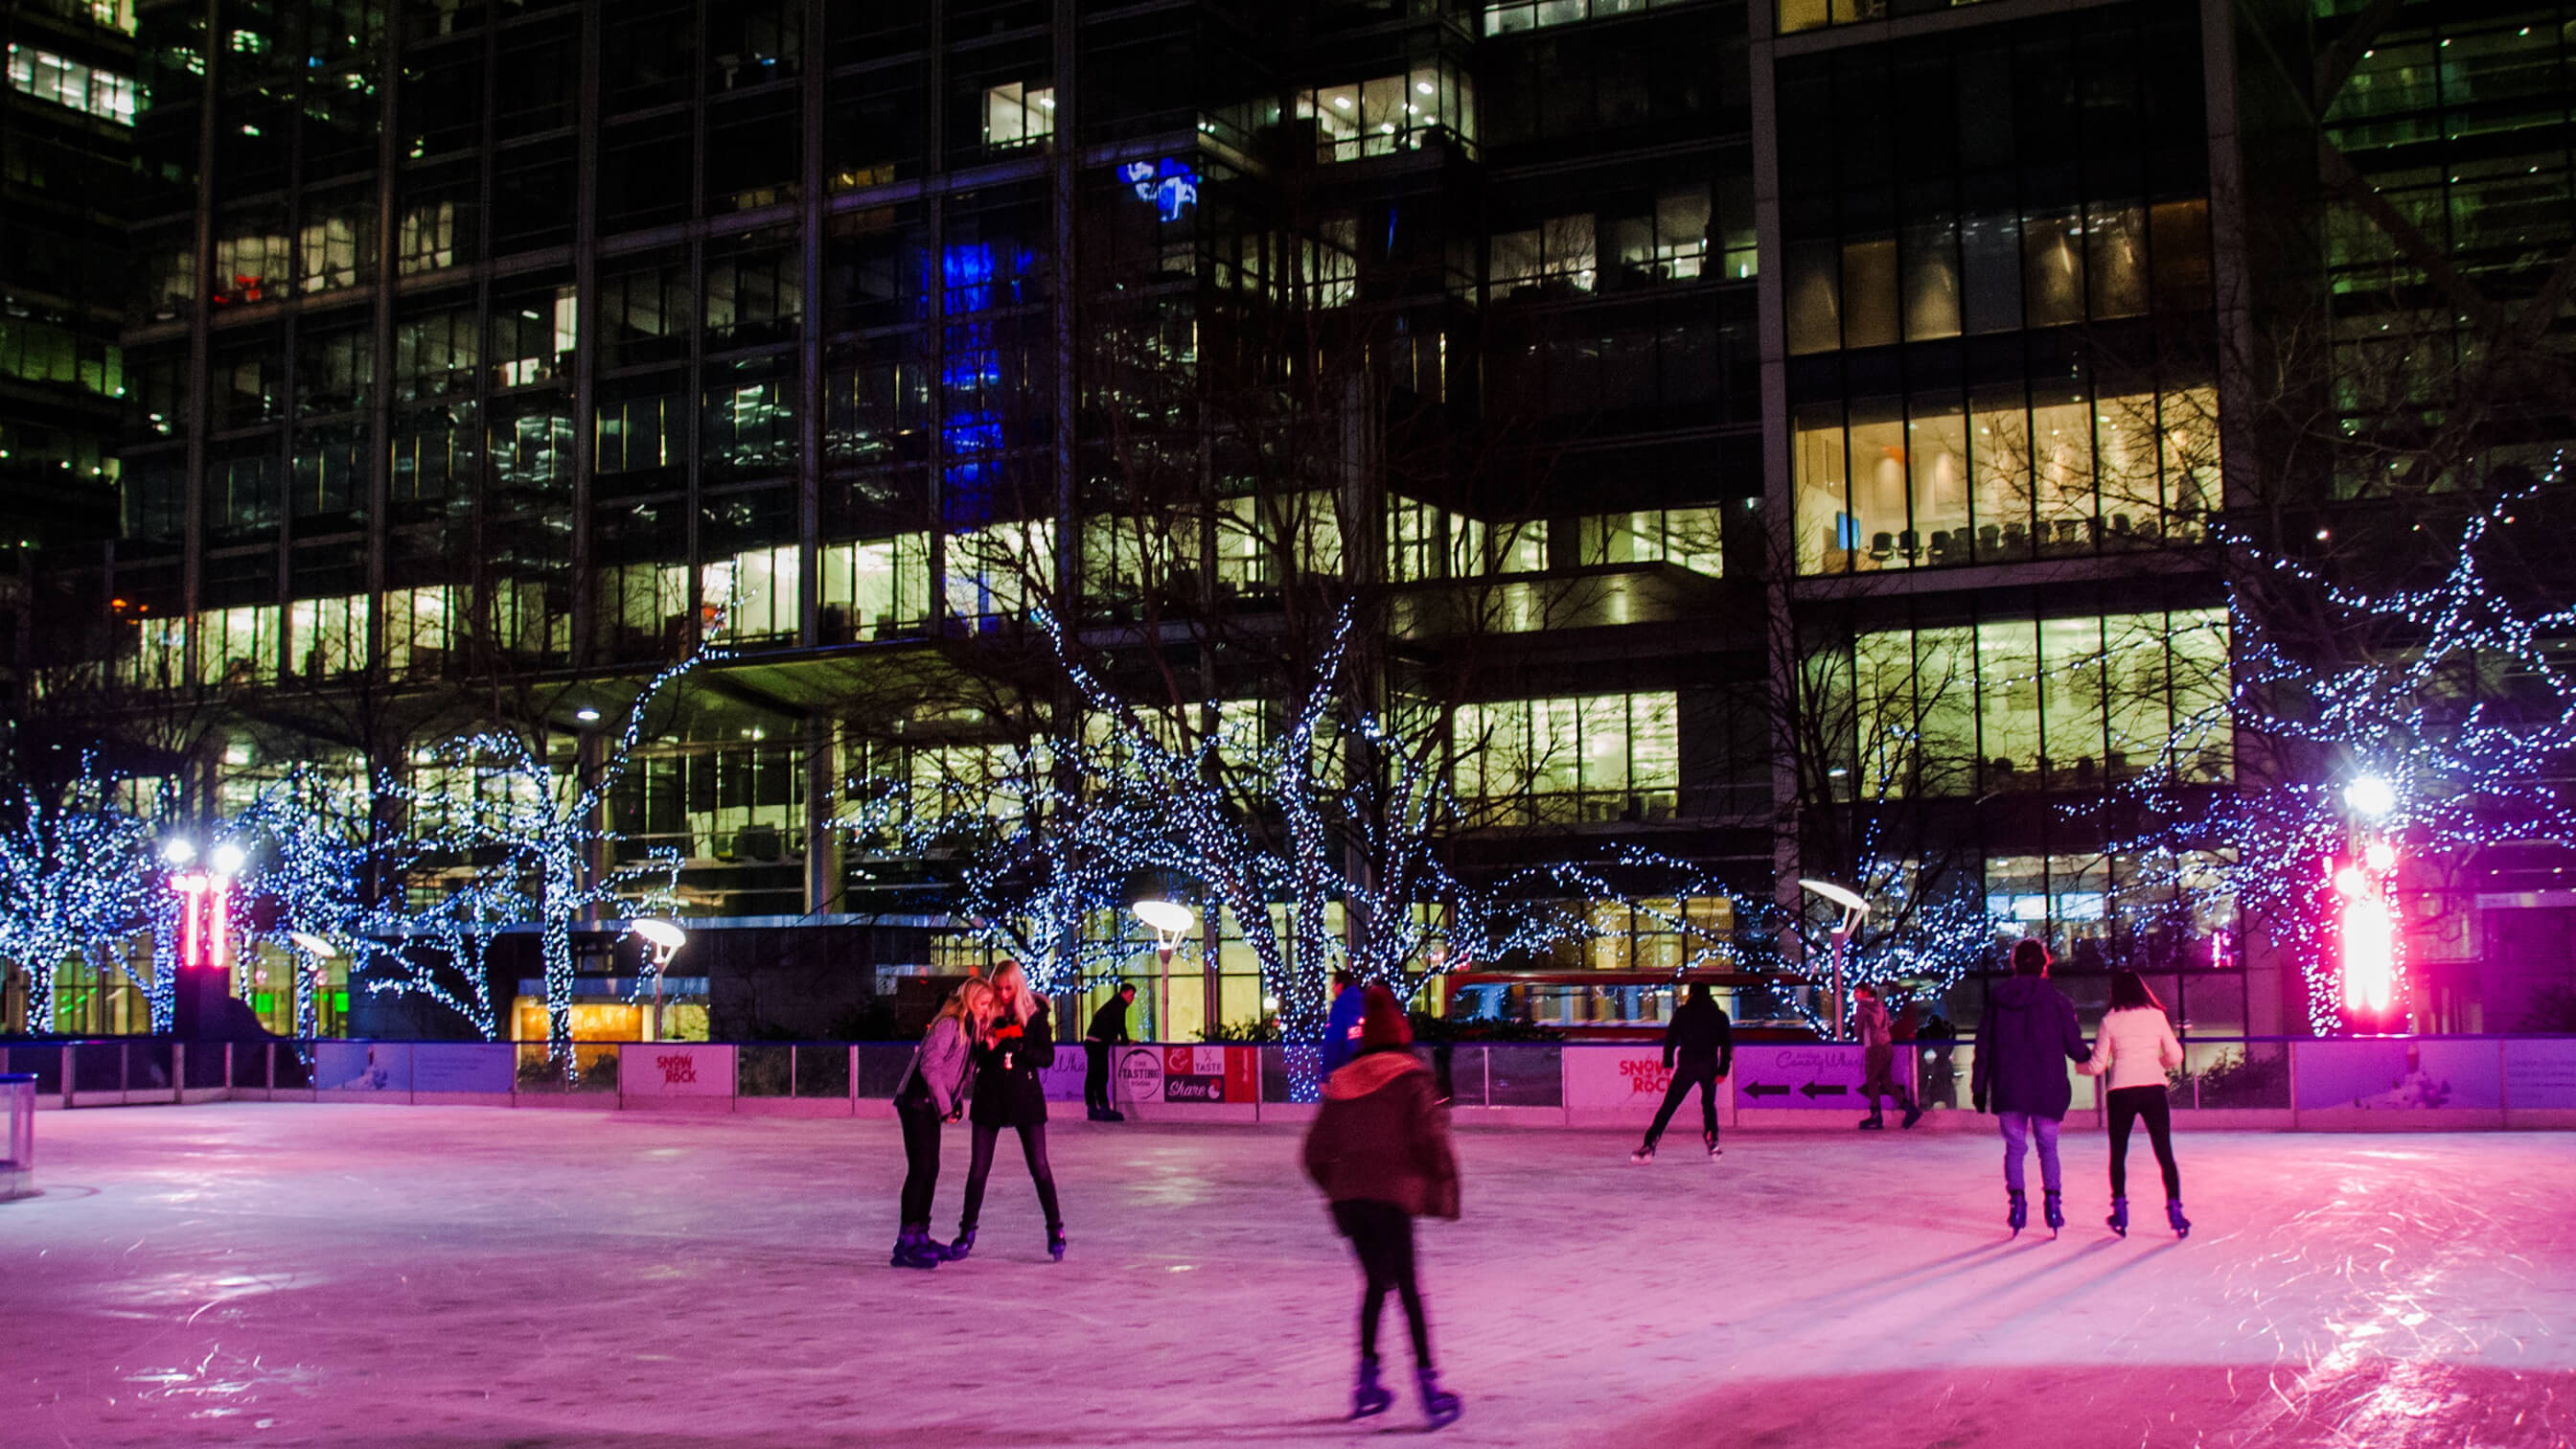 Chillers for London ice rink